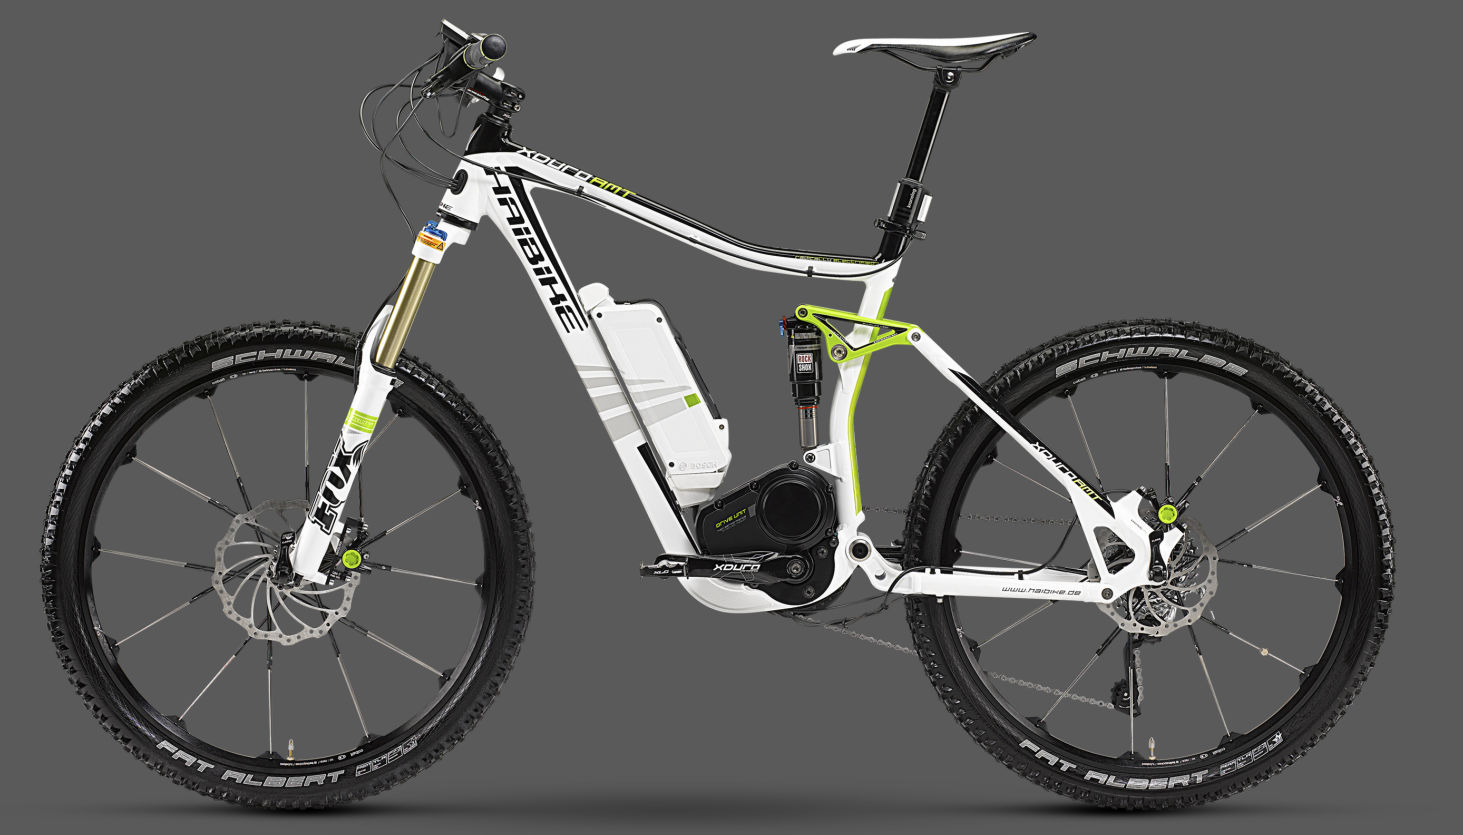 haibike eq xduro fs all mountain 26 rowery katalog. Black Bedroom Furniture Sets. Home Design Ideas